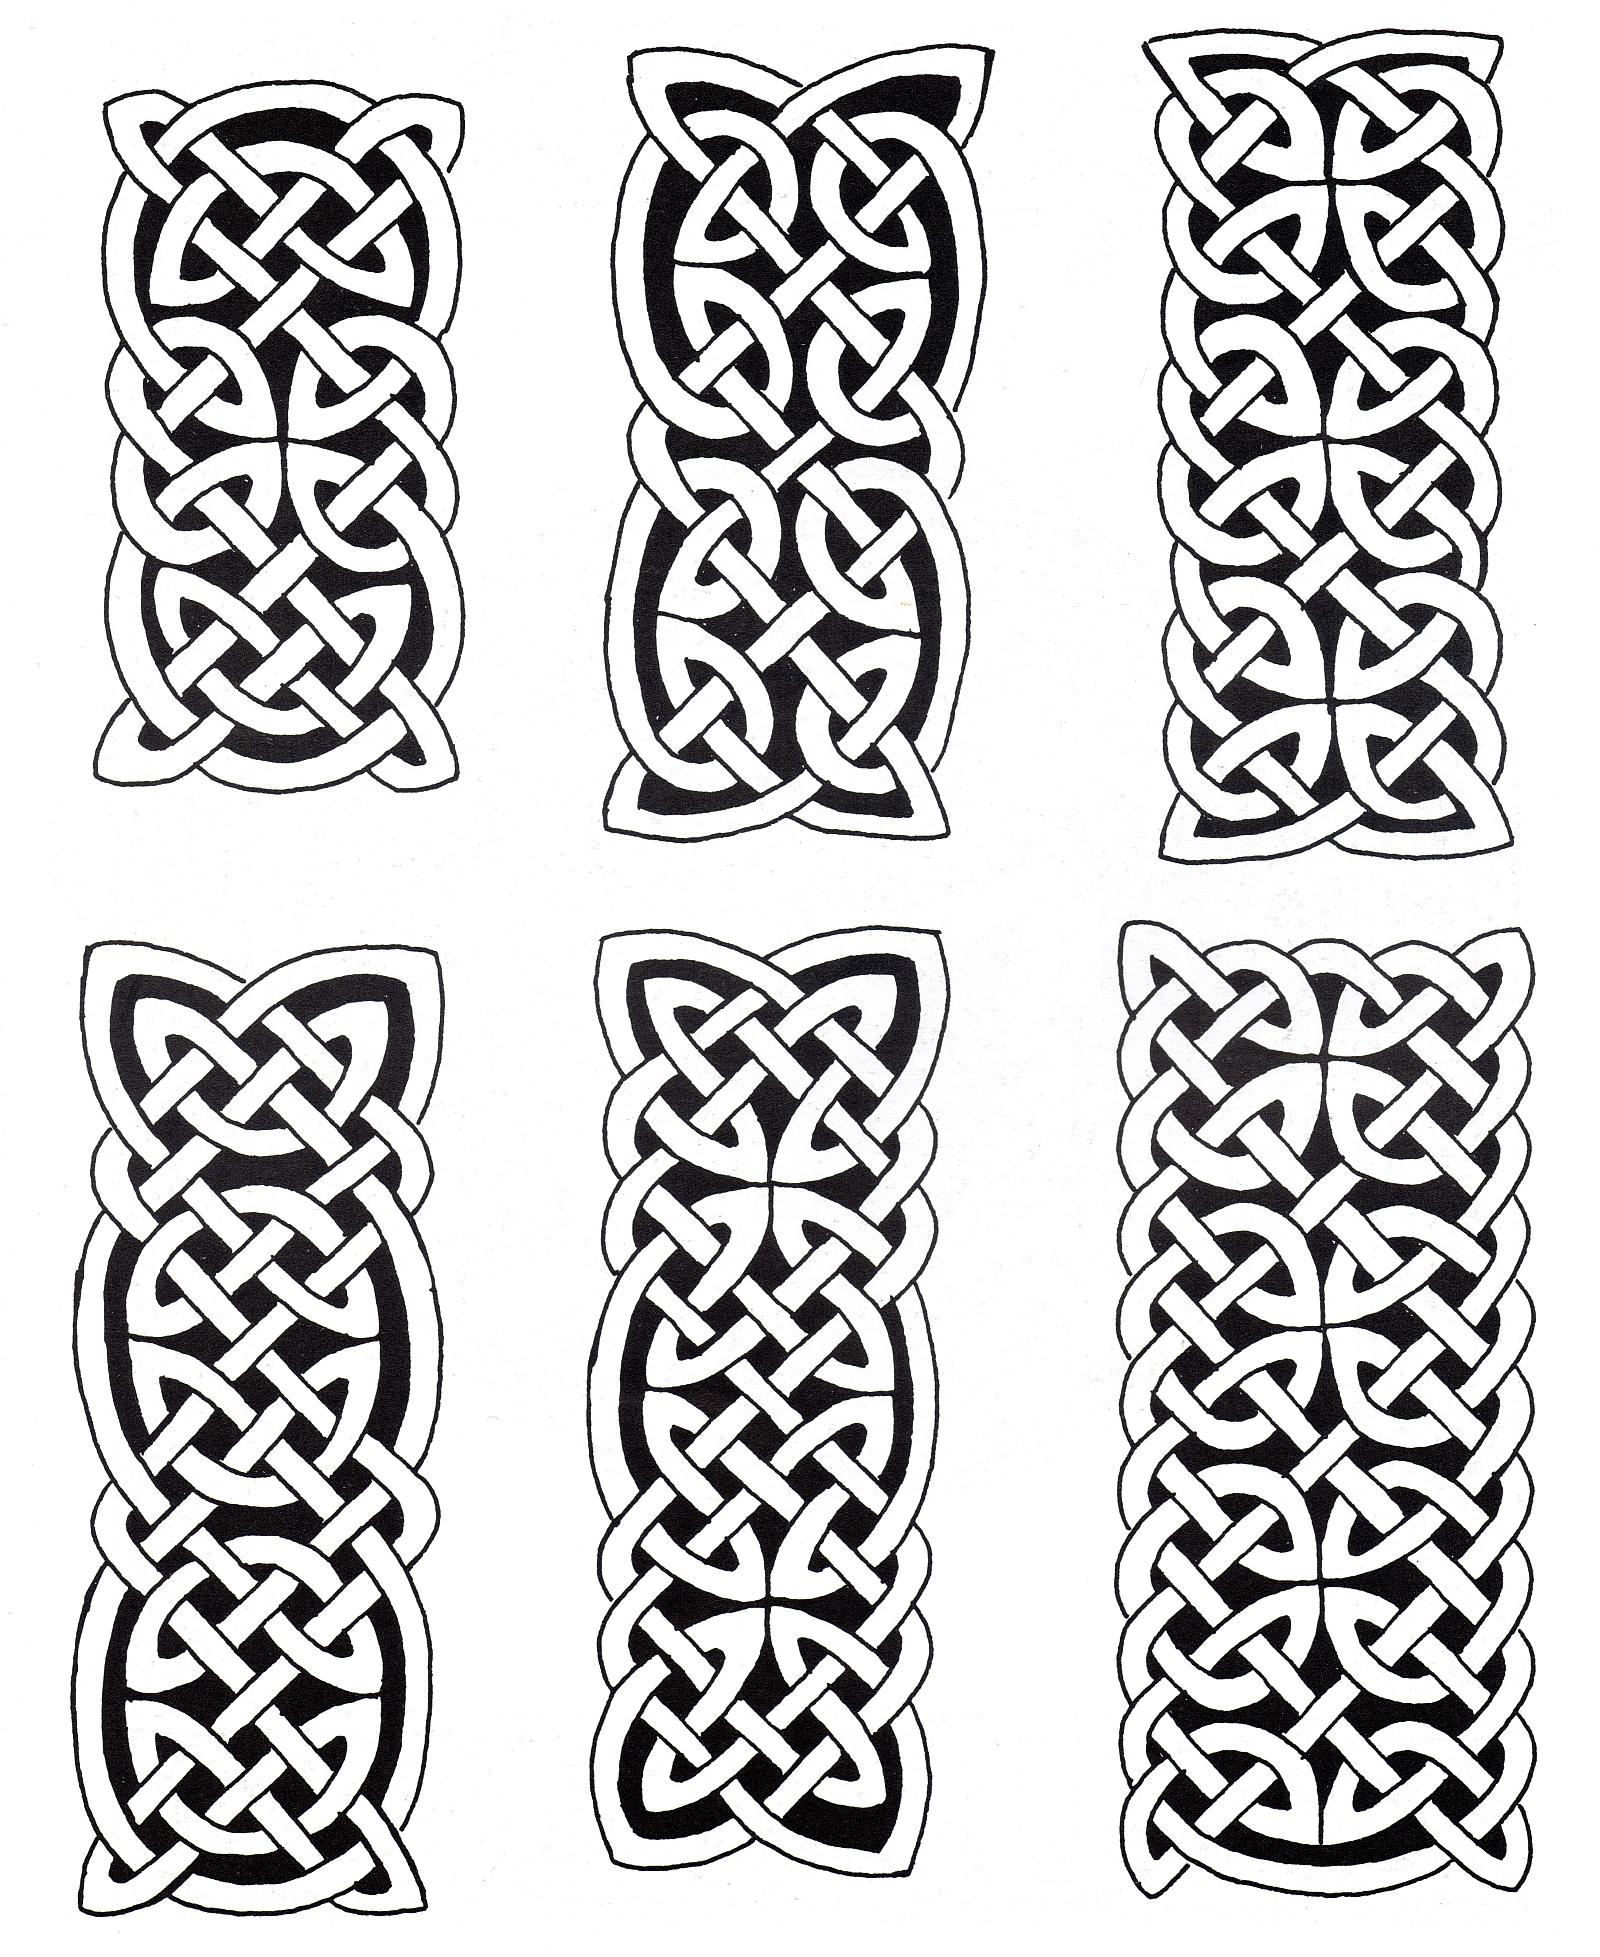 6 Celtic art designs